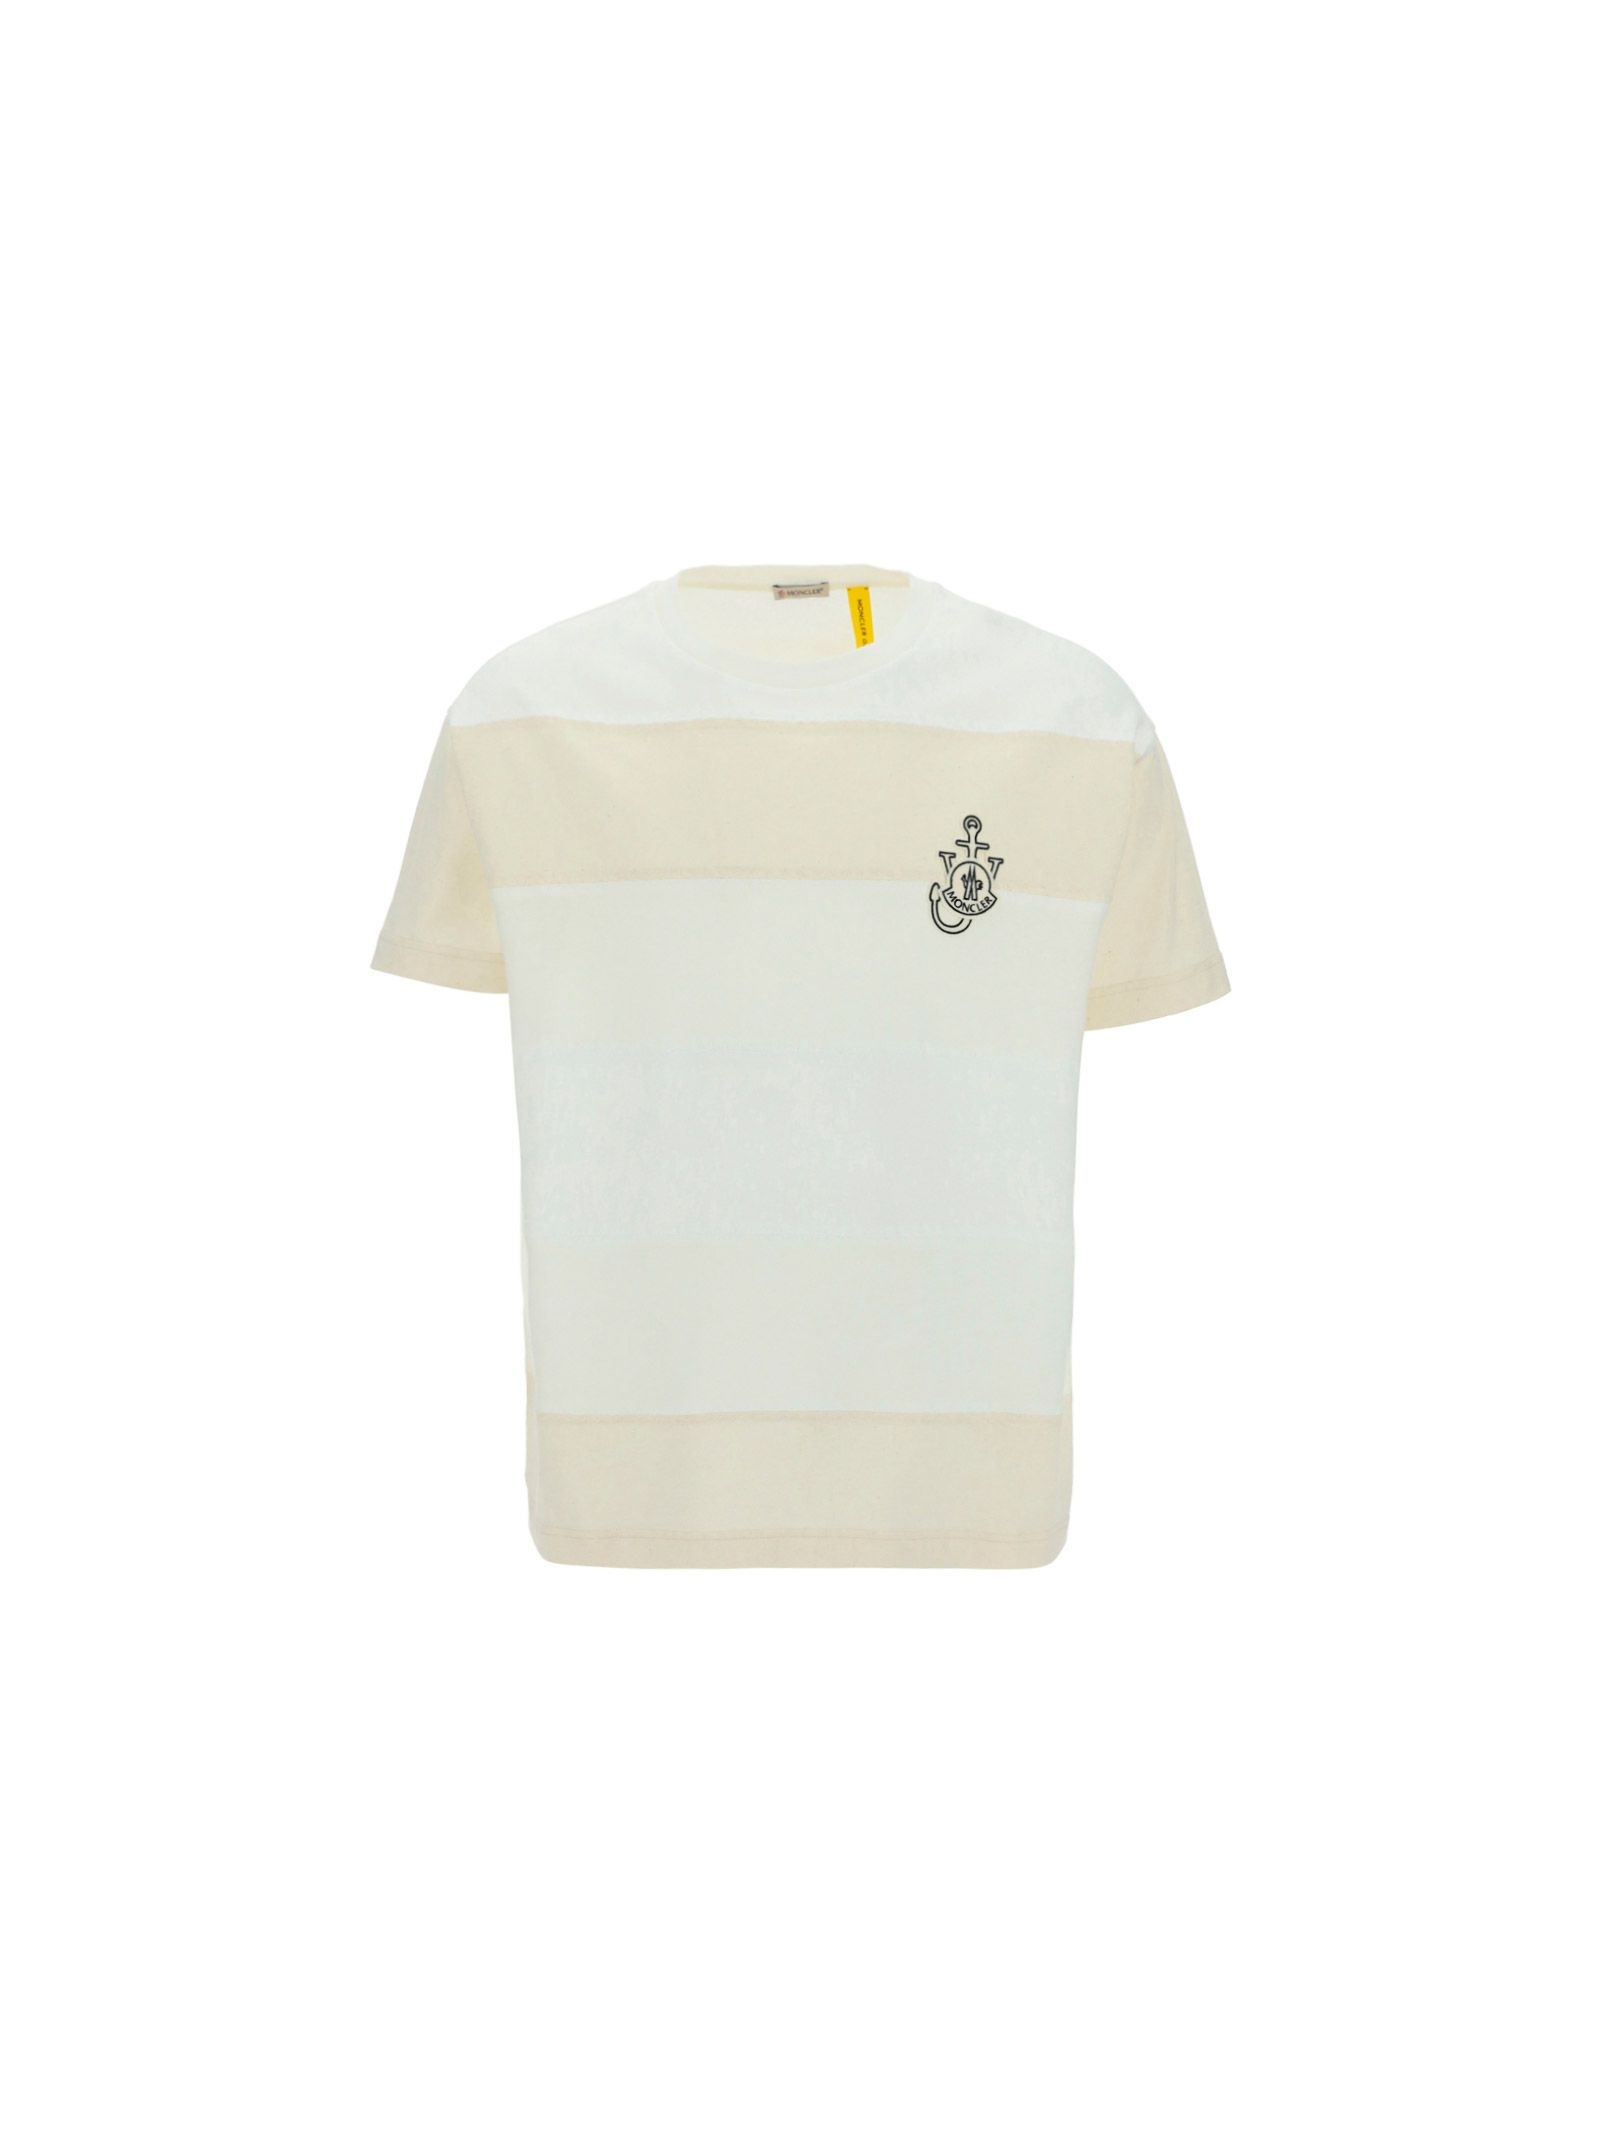 Moncler MONCLER MEN'S WHITE OTHER MATERIALS T-SHIRT